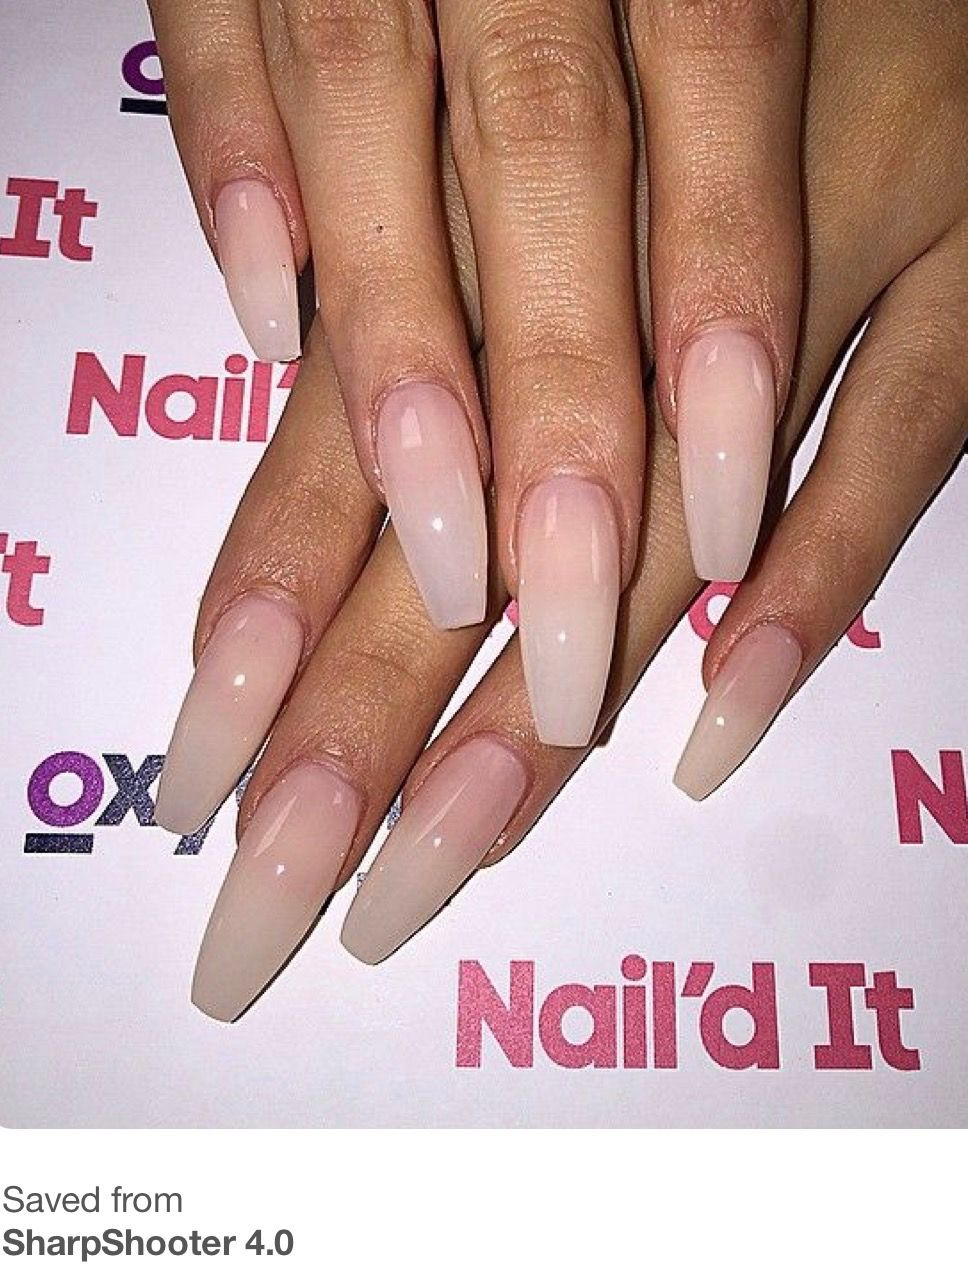 Bubble Bath By Opi Cred Pinterest Nails Cuffin Nails Ballerina Acrylic Nails